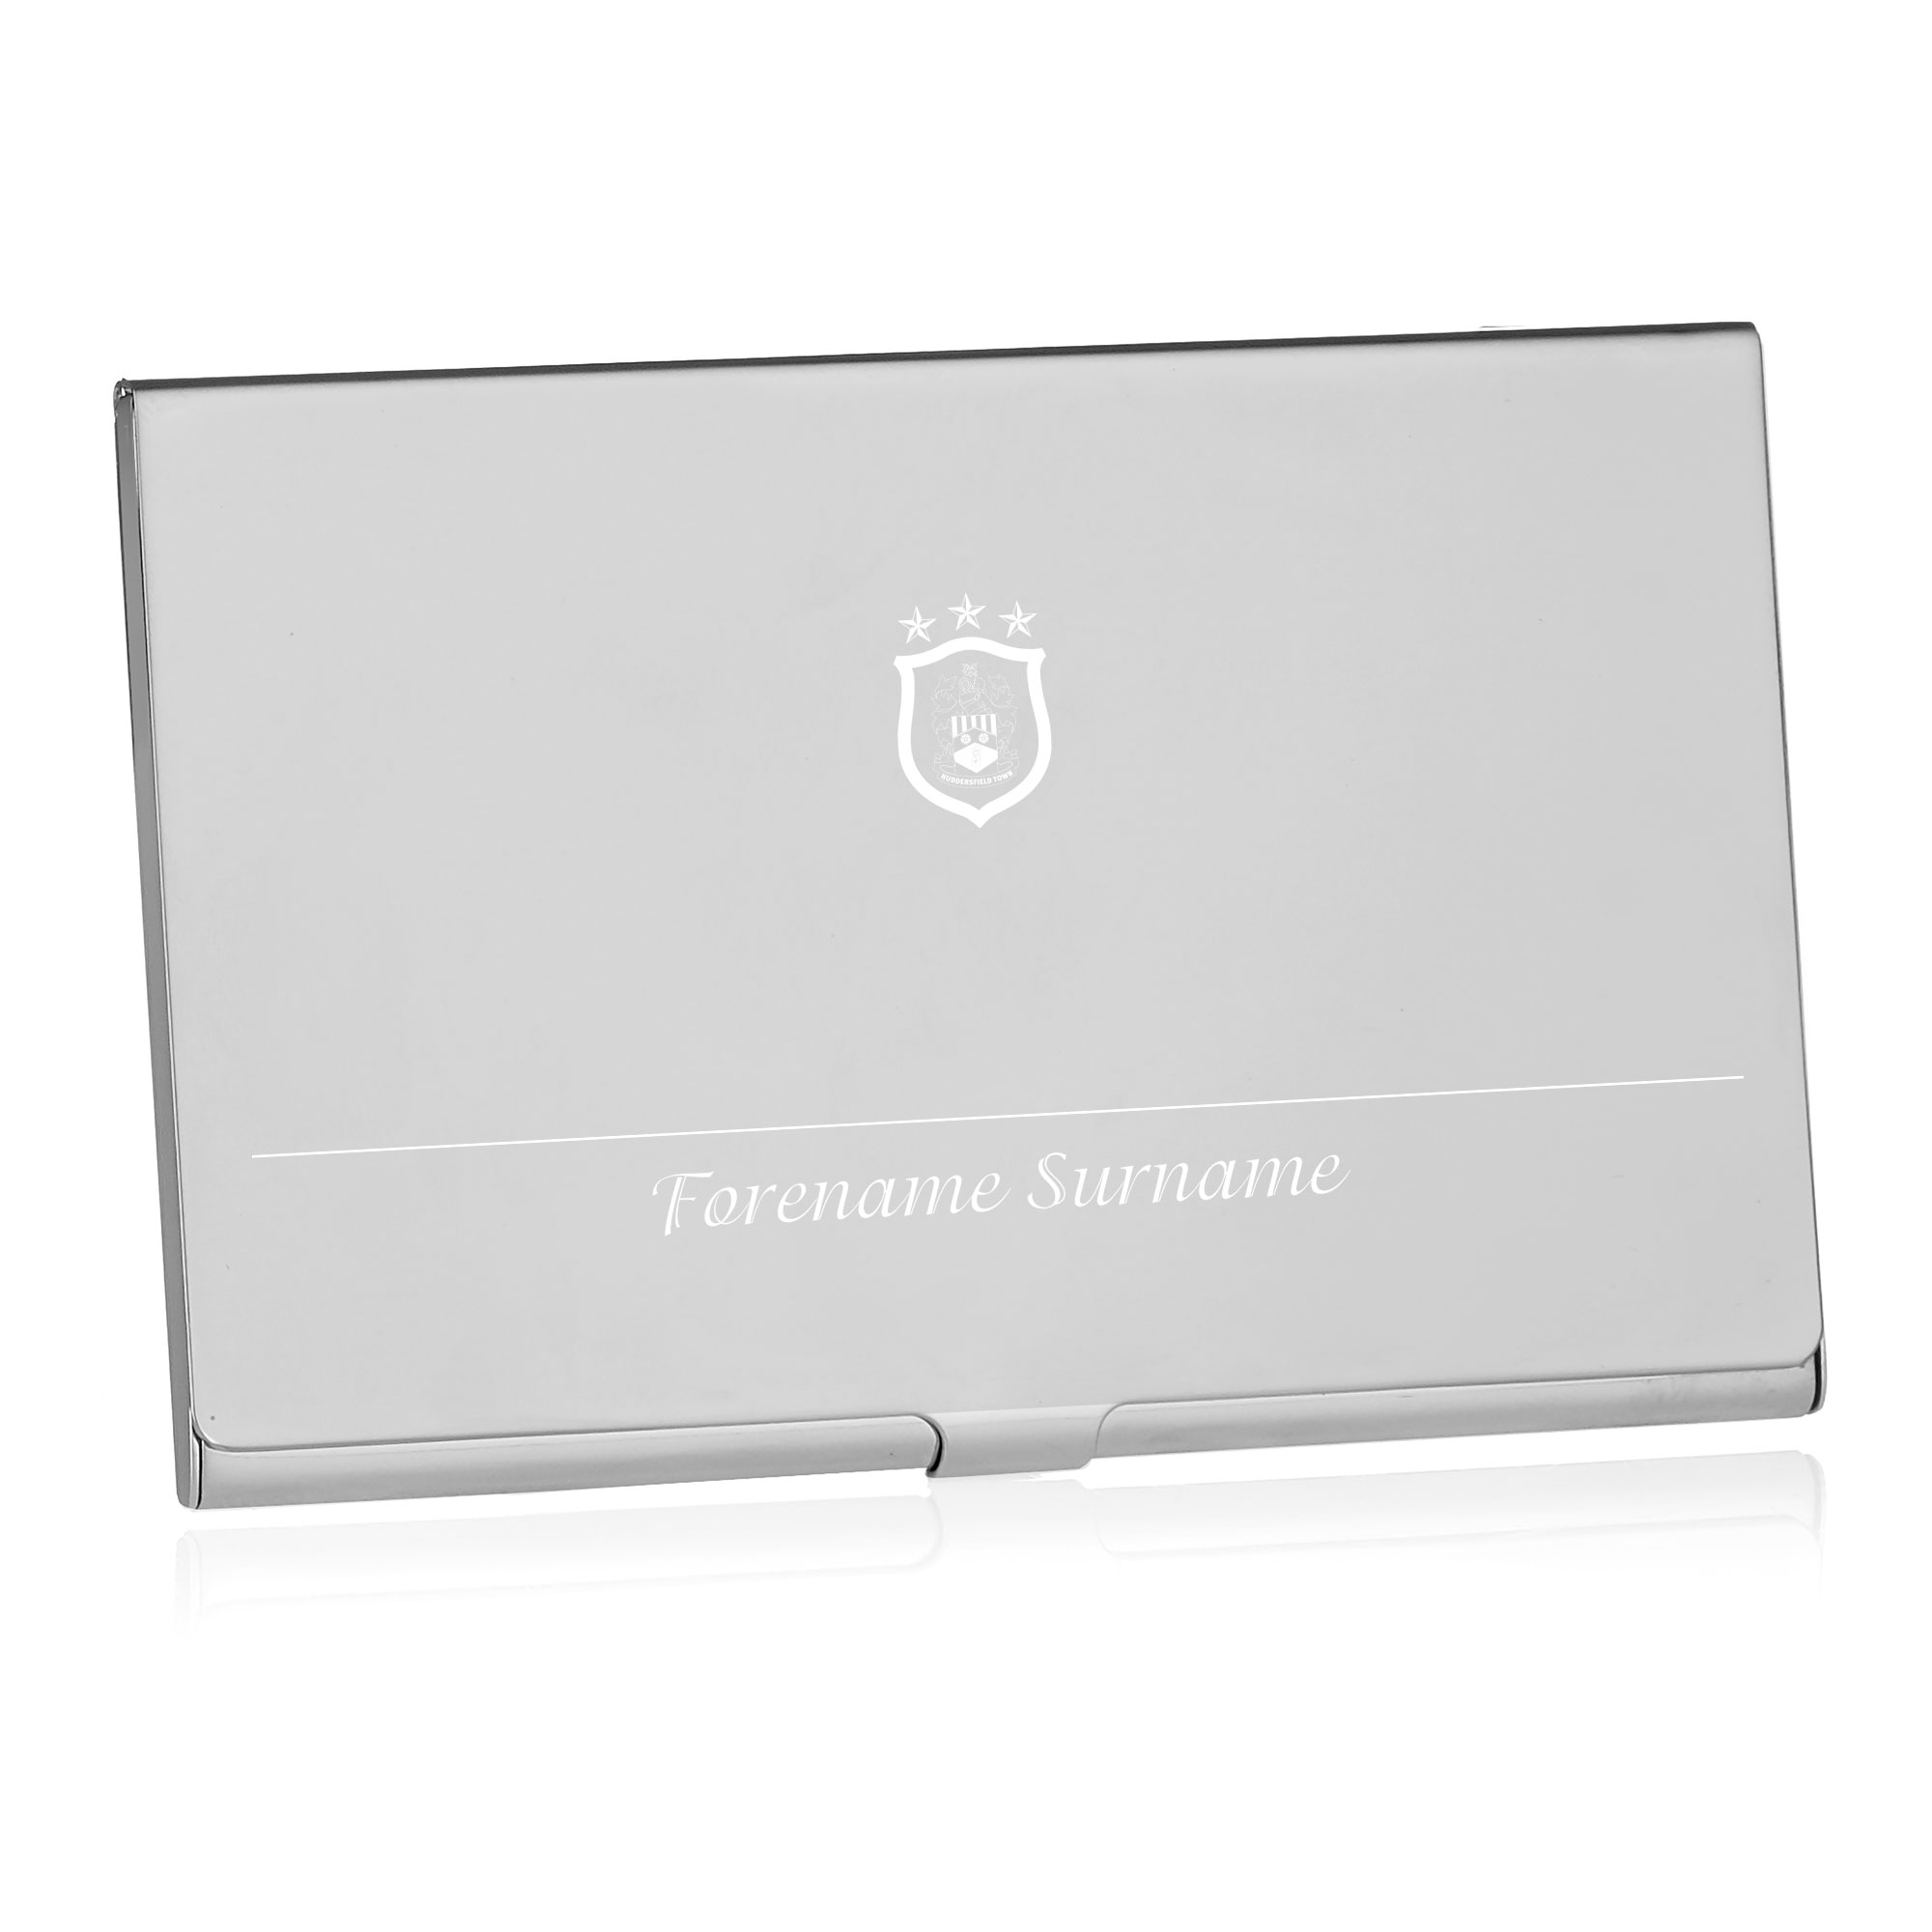 Huddersfield Town Executive Business Card Holder